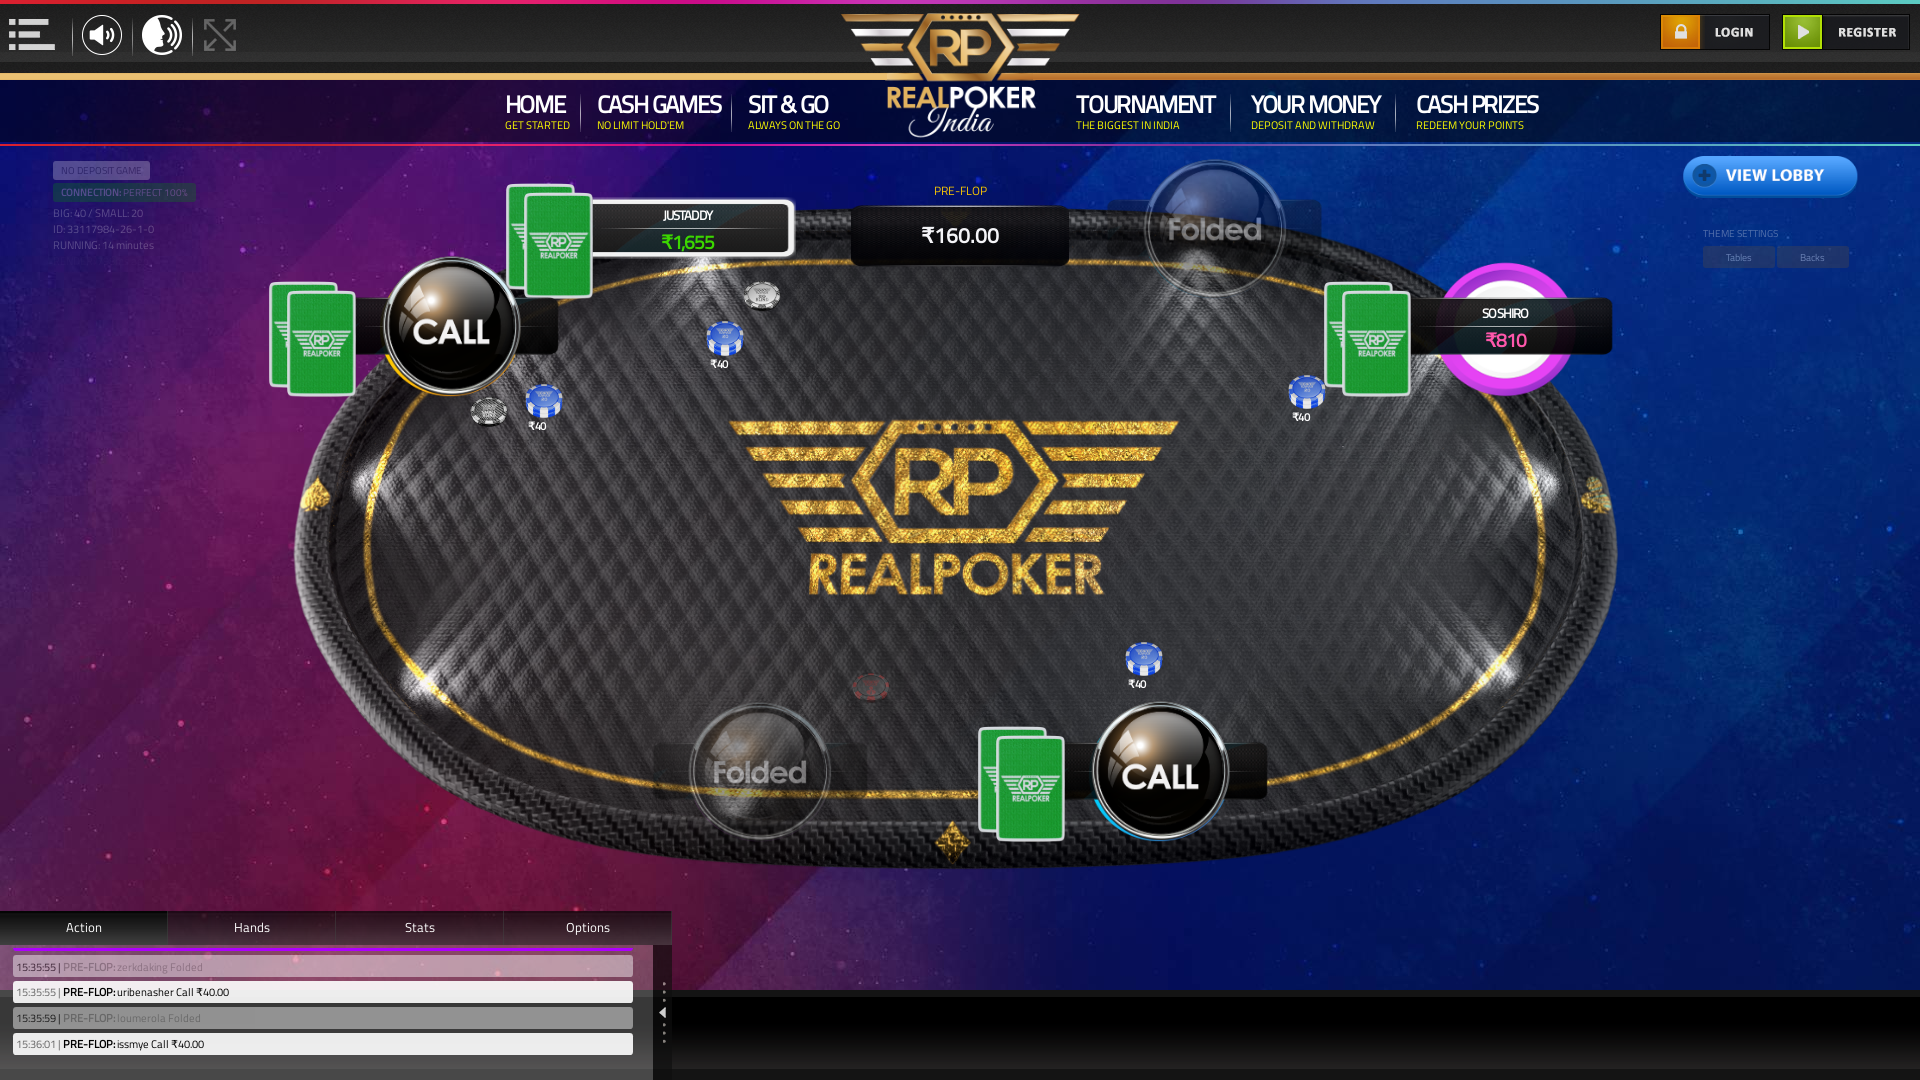 Mangalore Blackjack Poker from November